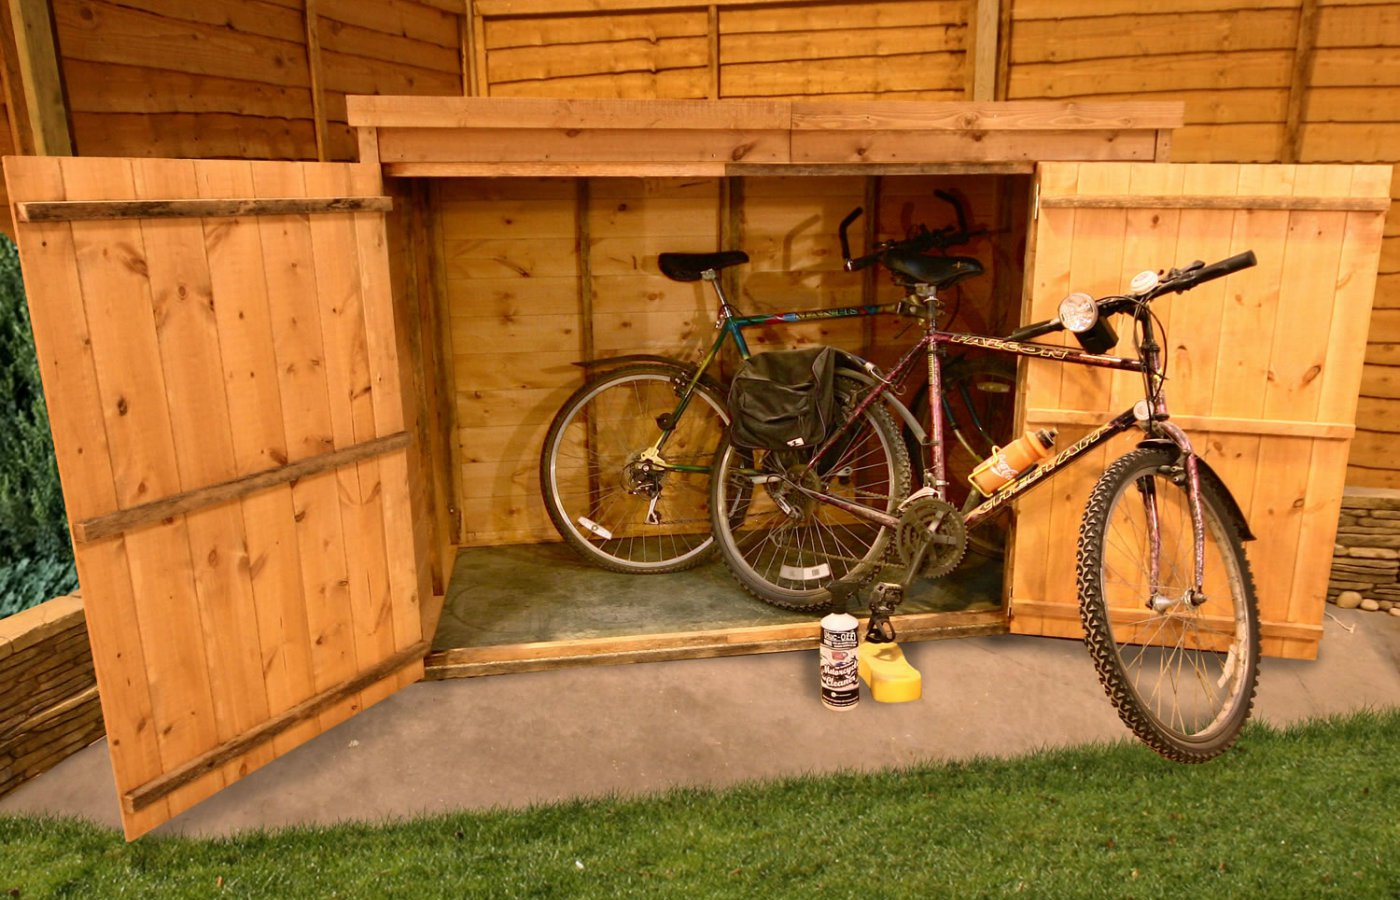 Installing a bike shed check what the rules are before you order your bike shed and you could end up save yourself from an expensive hassle down the line solutioingenieria Image collections